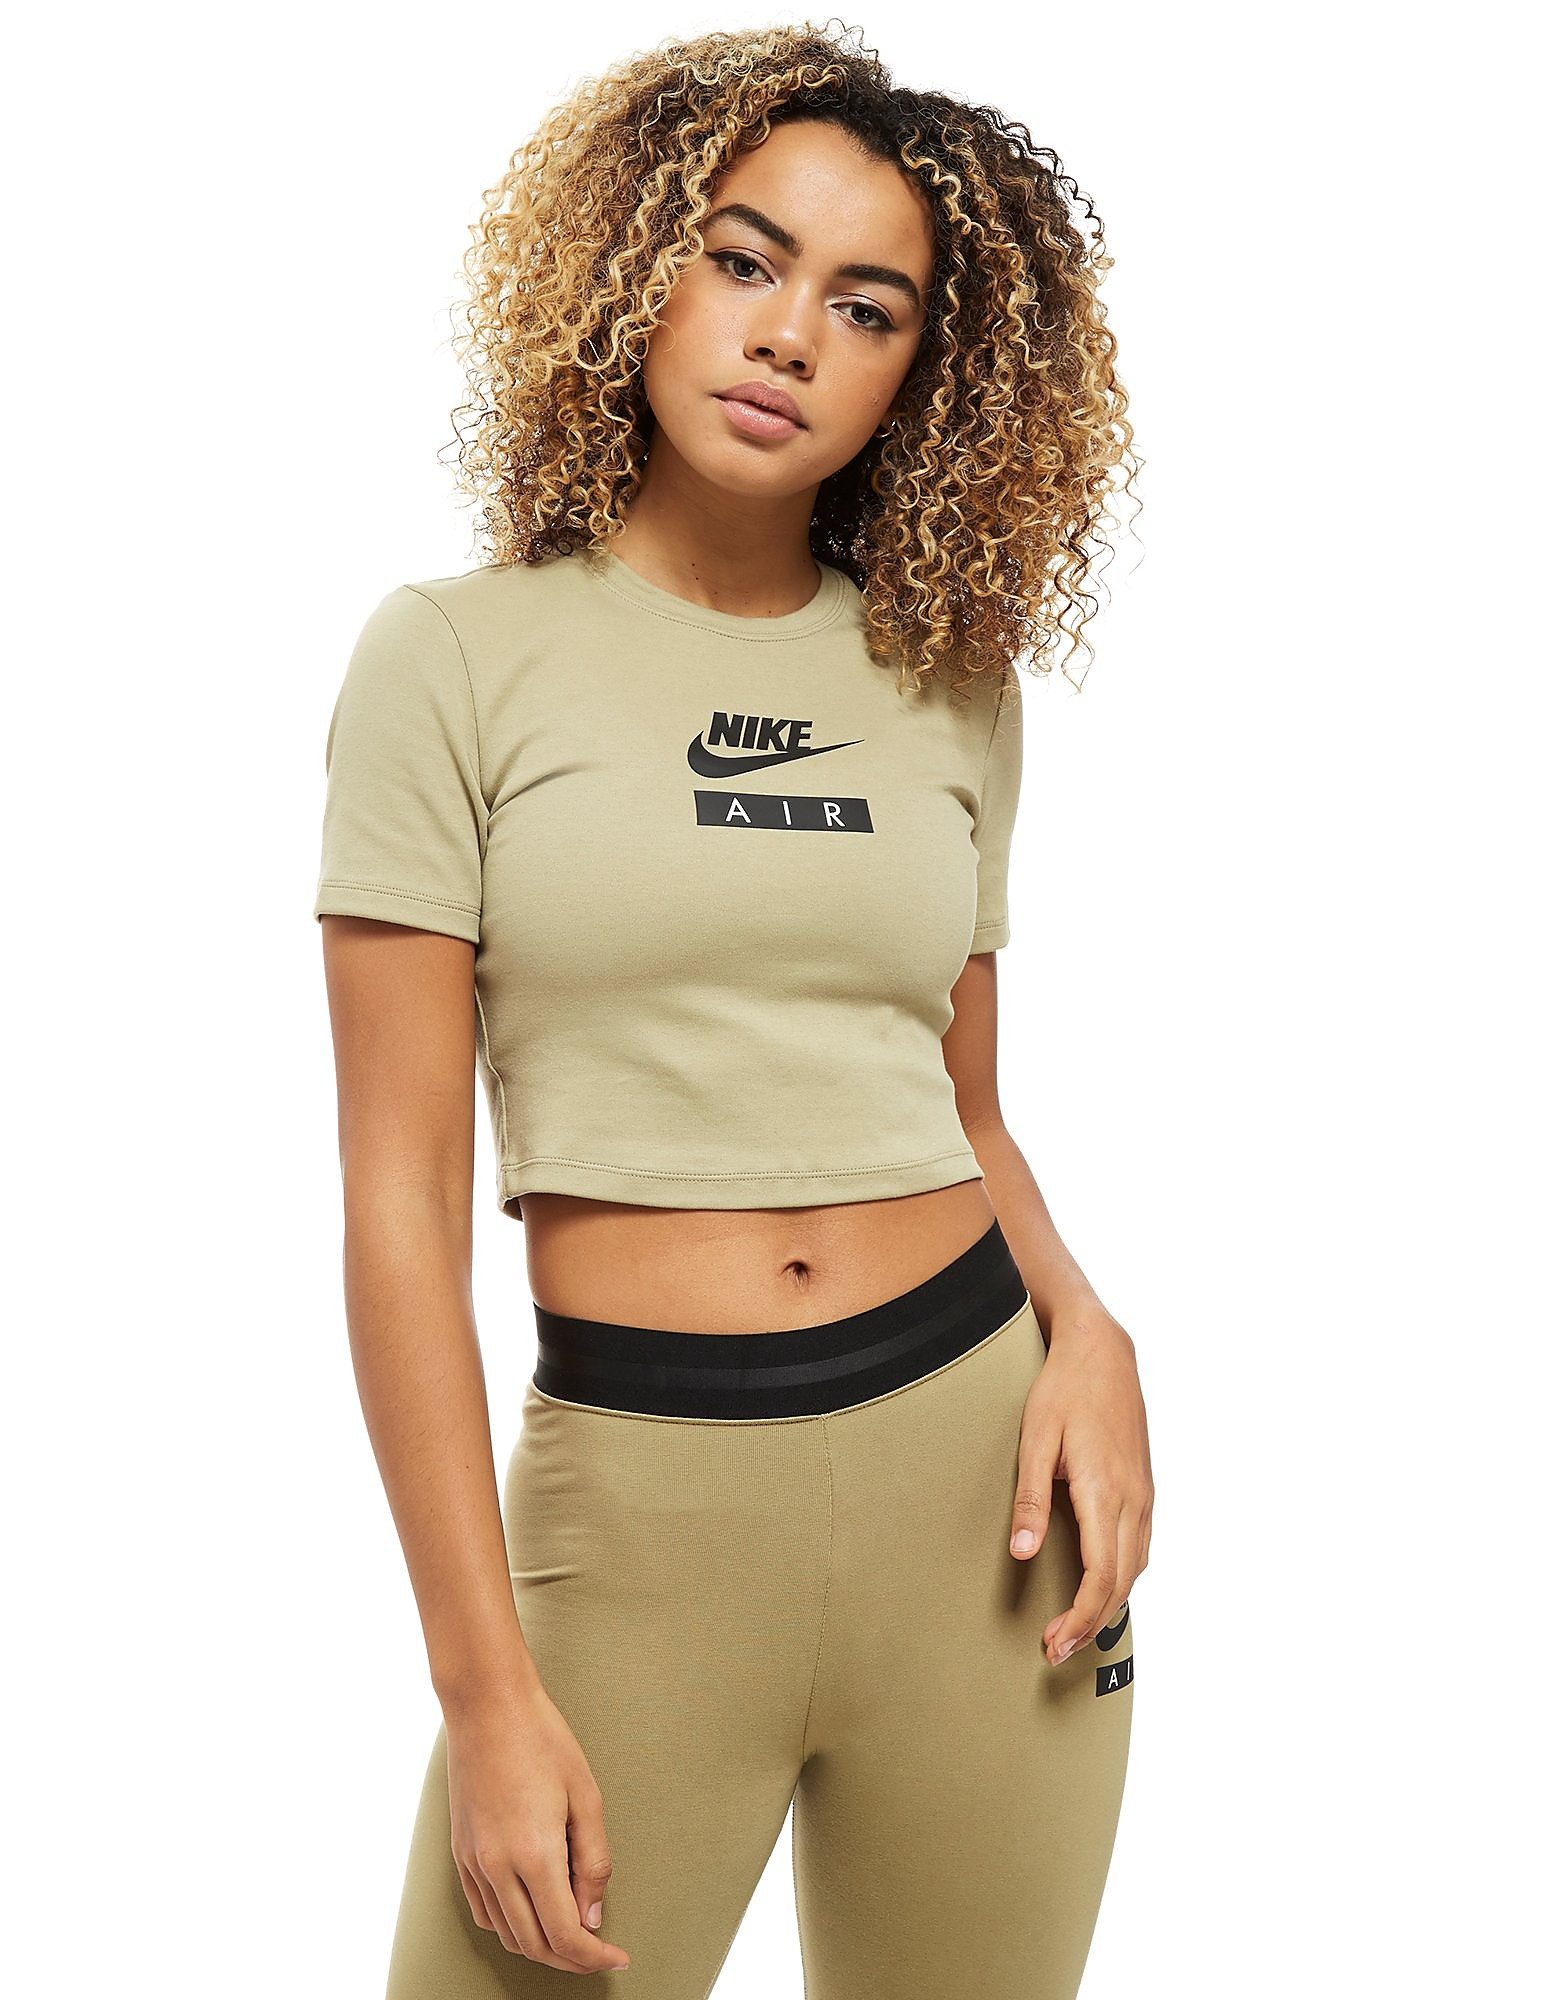 Nike Air Slim T-Shirt